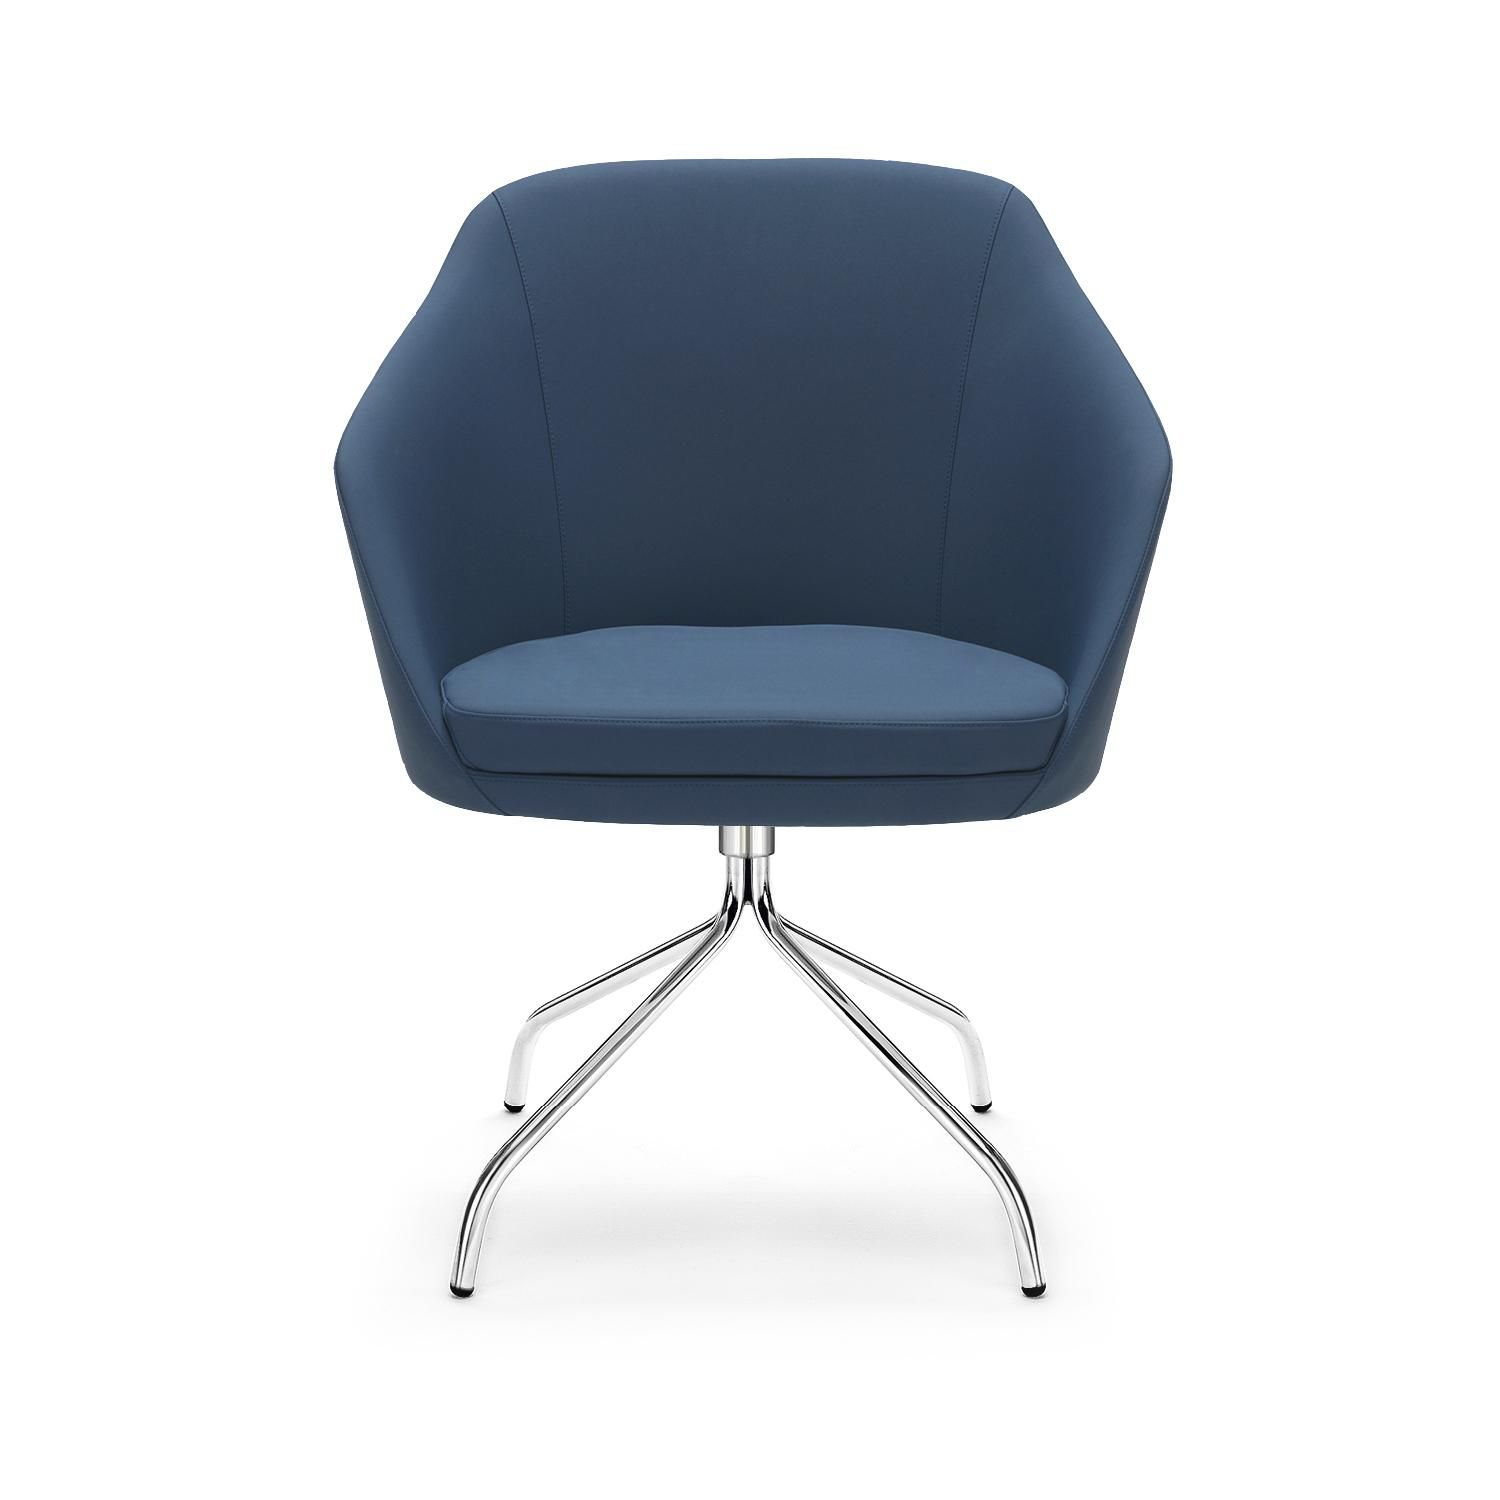 does furniture it what joya be used for cbi nc gallery office greensboro and mean an creative home interiors business new to ergonomic